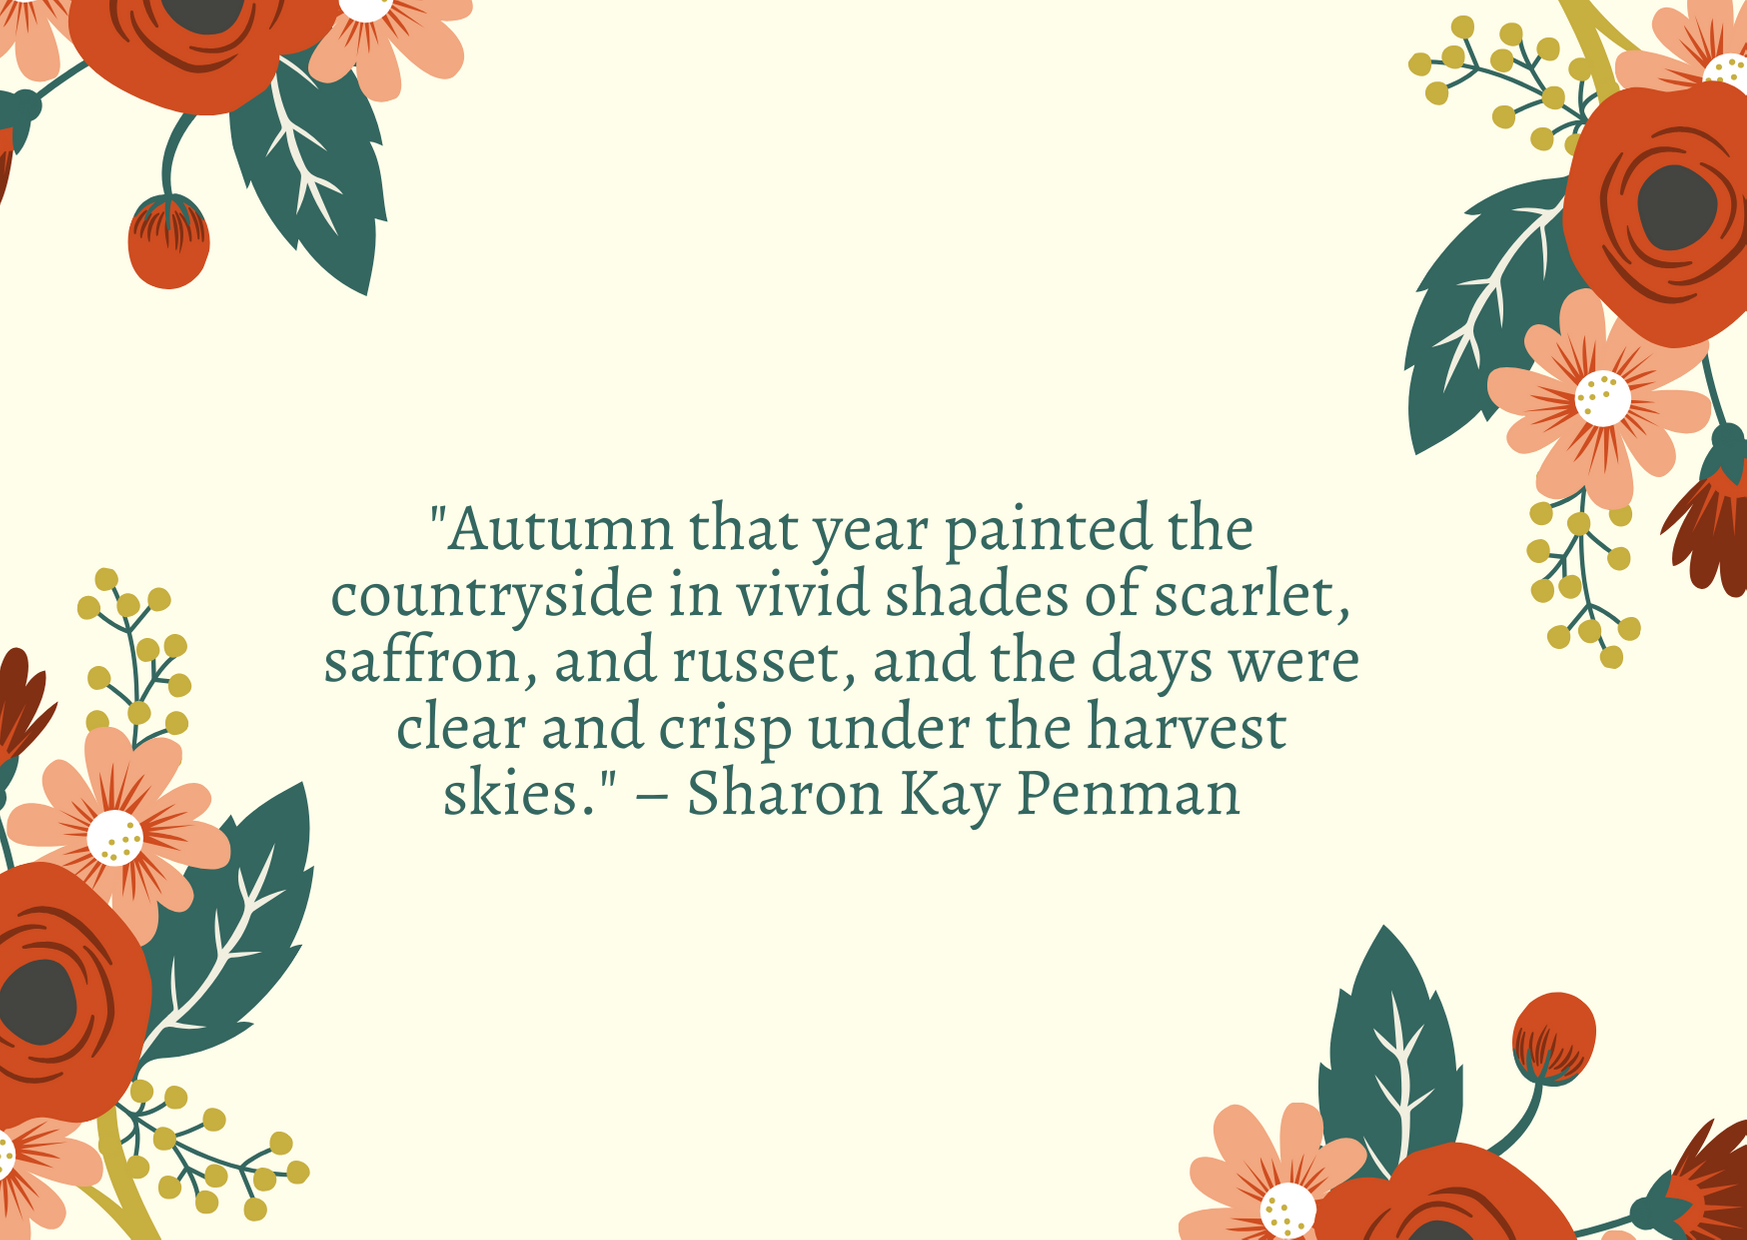 """Autumn that year painted the countryside in vivid shades of scarlet, saffron, and russet, and the days were clear and crisp under the harvest skies."" – Sharon Kay Penman"